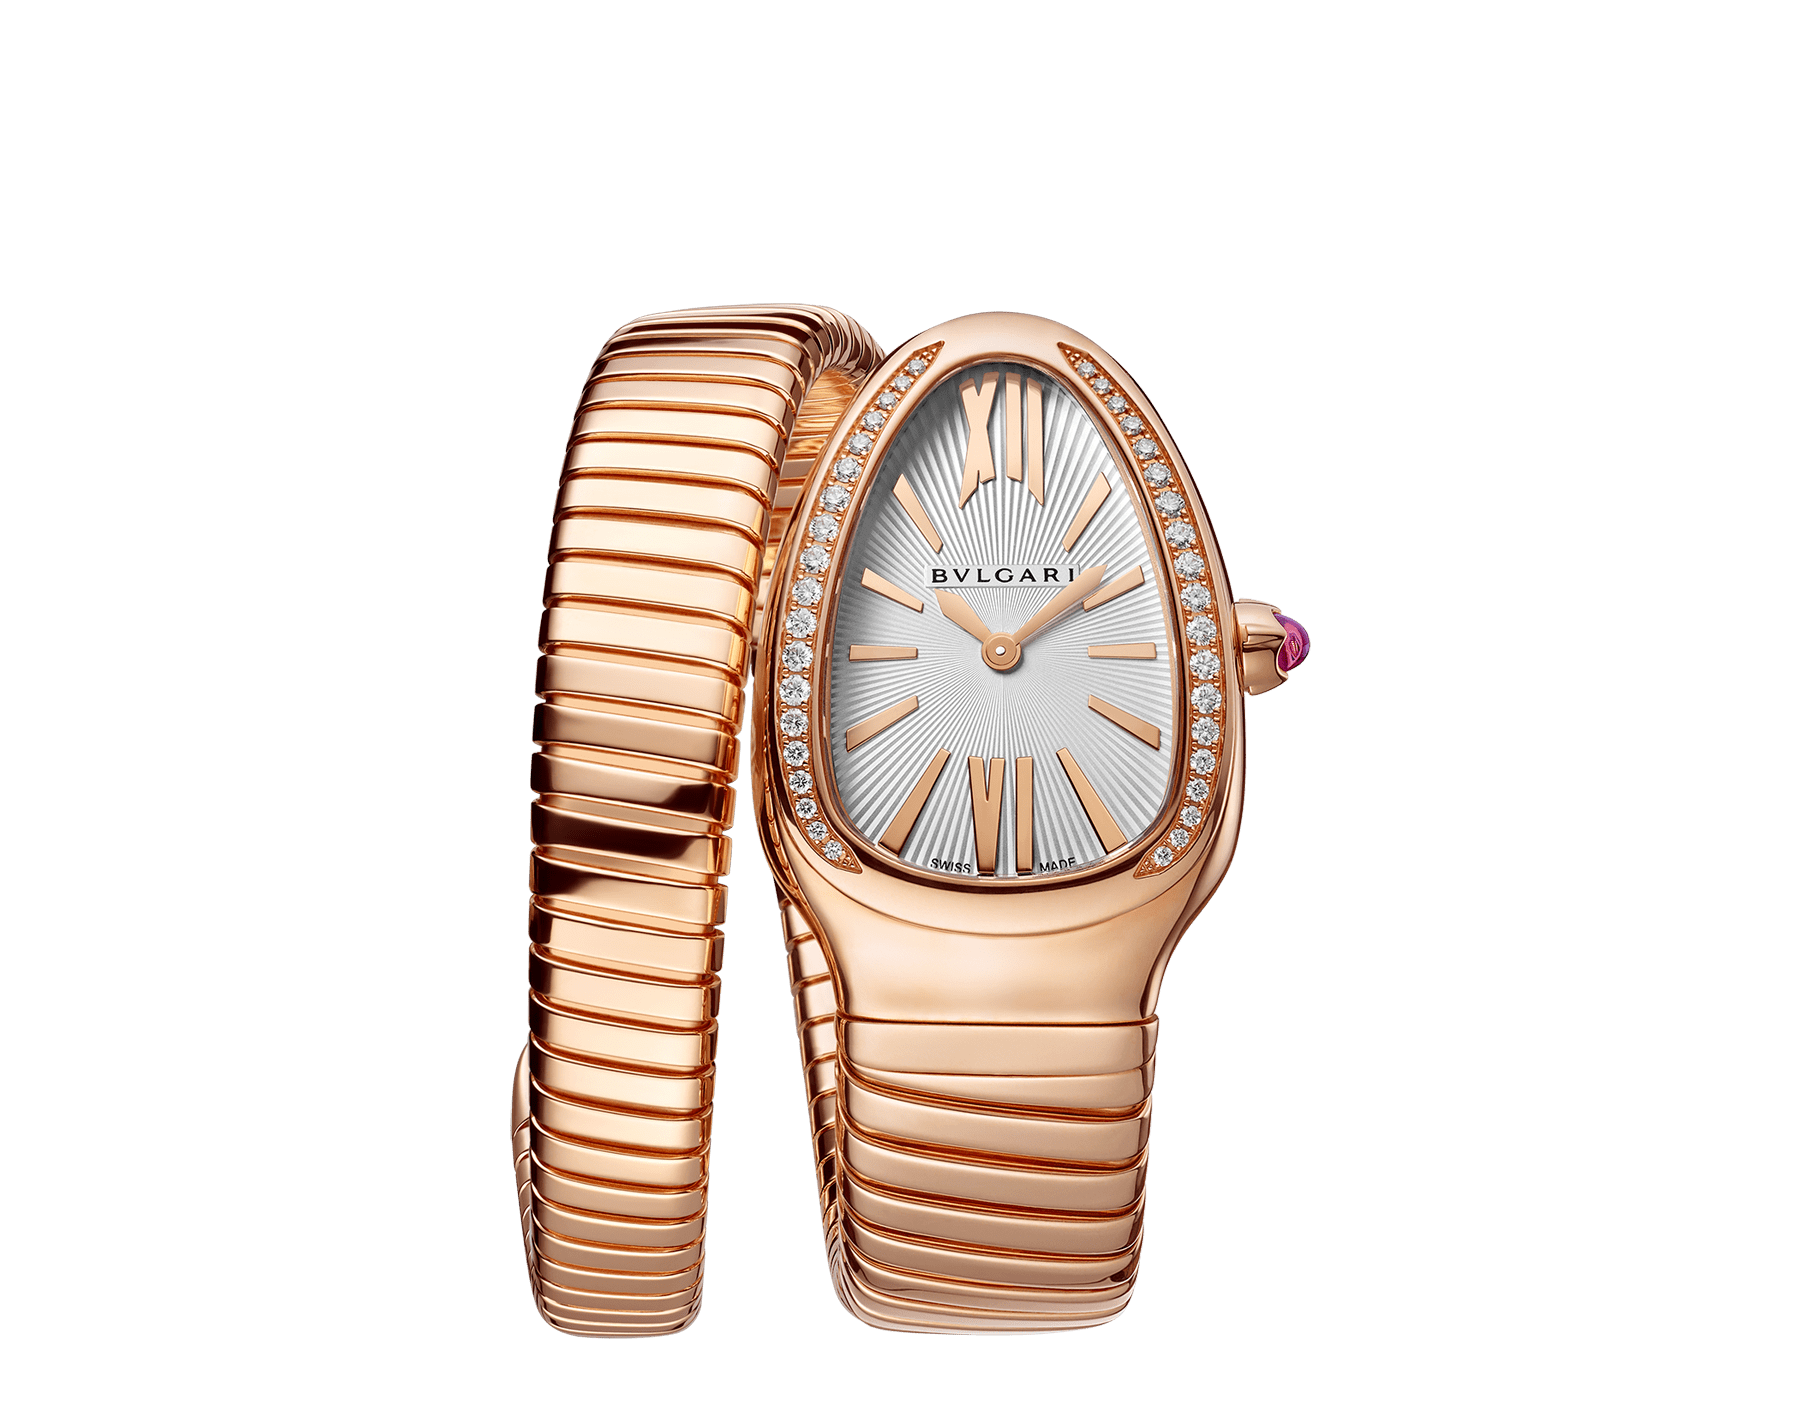 Serpenti Tubogas single spiral watch with 18 kt rose gold case set with brilliant-cut diamonds, silver opaline dial and 18 kt rose gold bracelet 103003 image 1